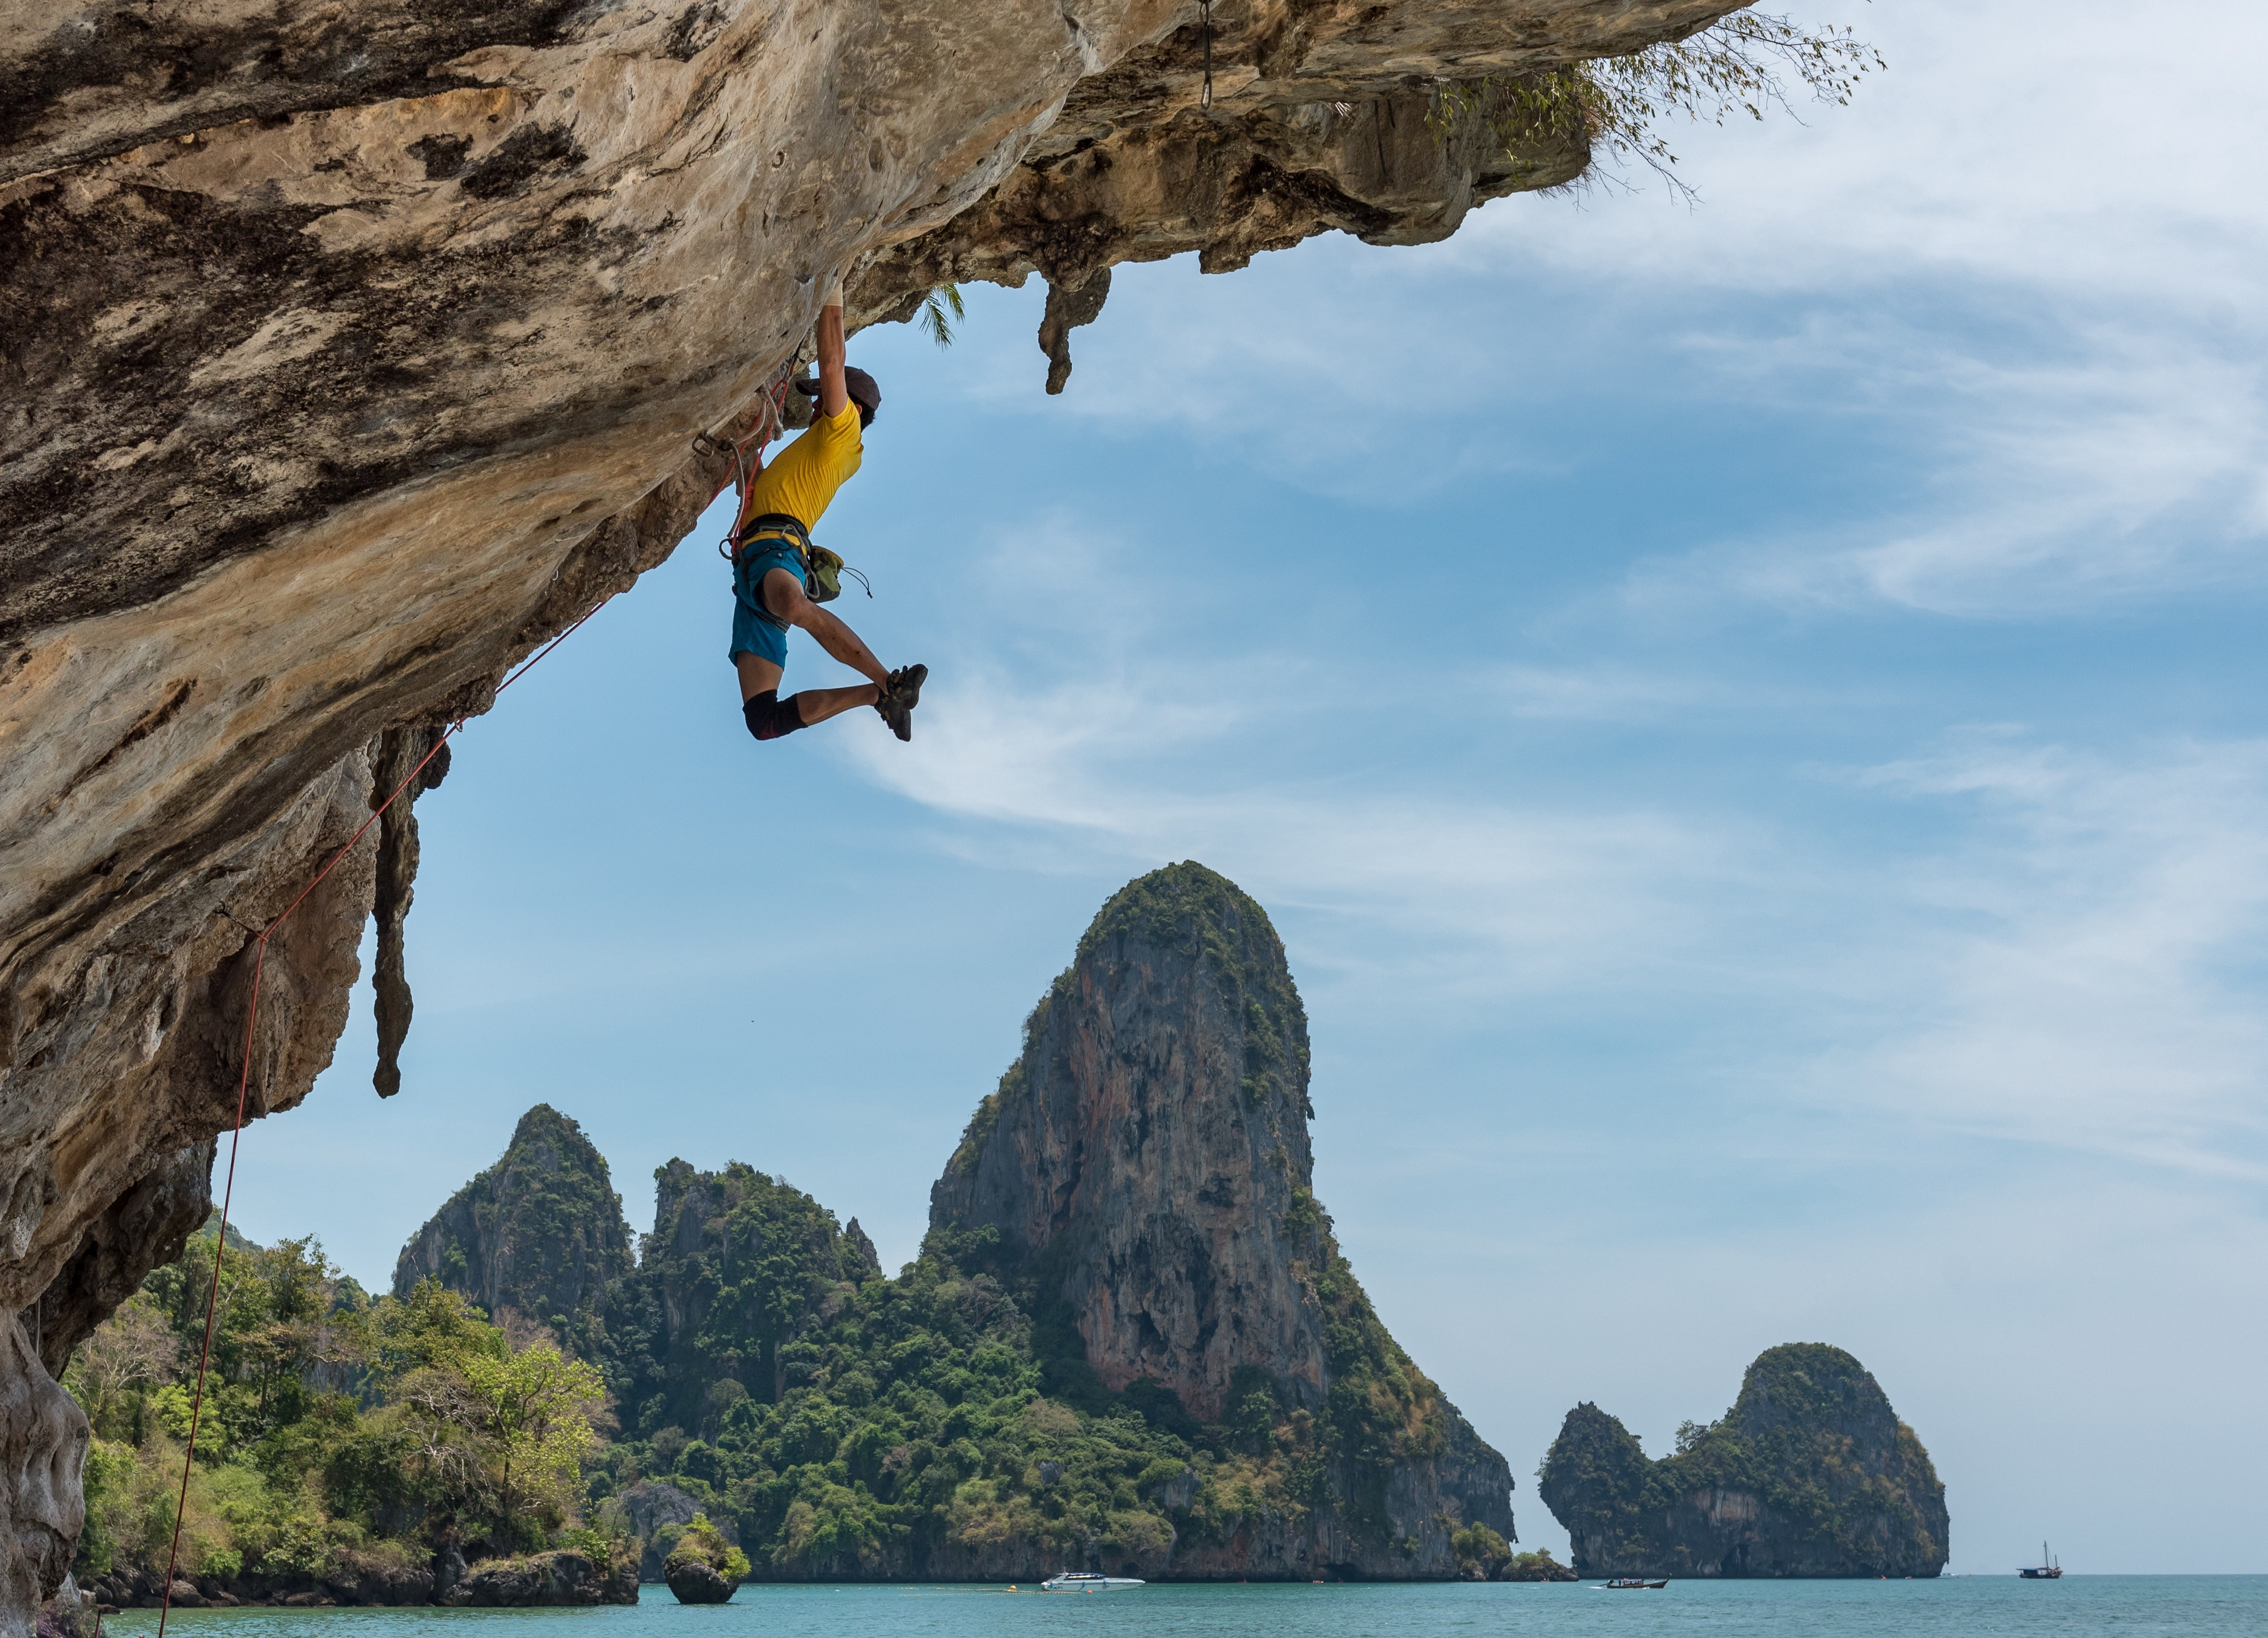 Illustrative: a man hanging from a cliff